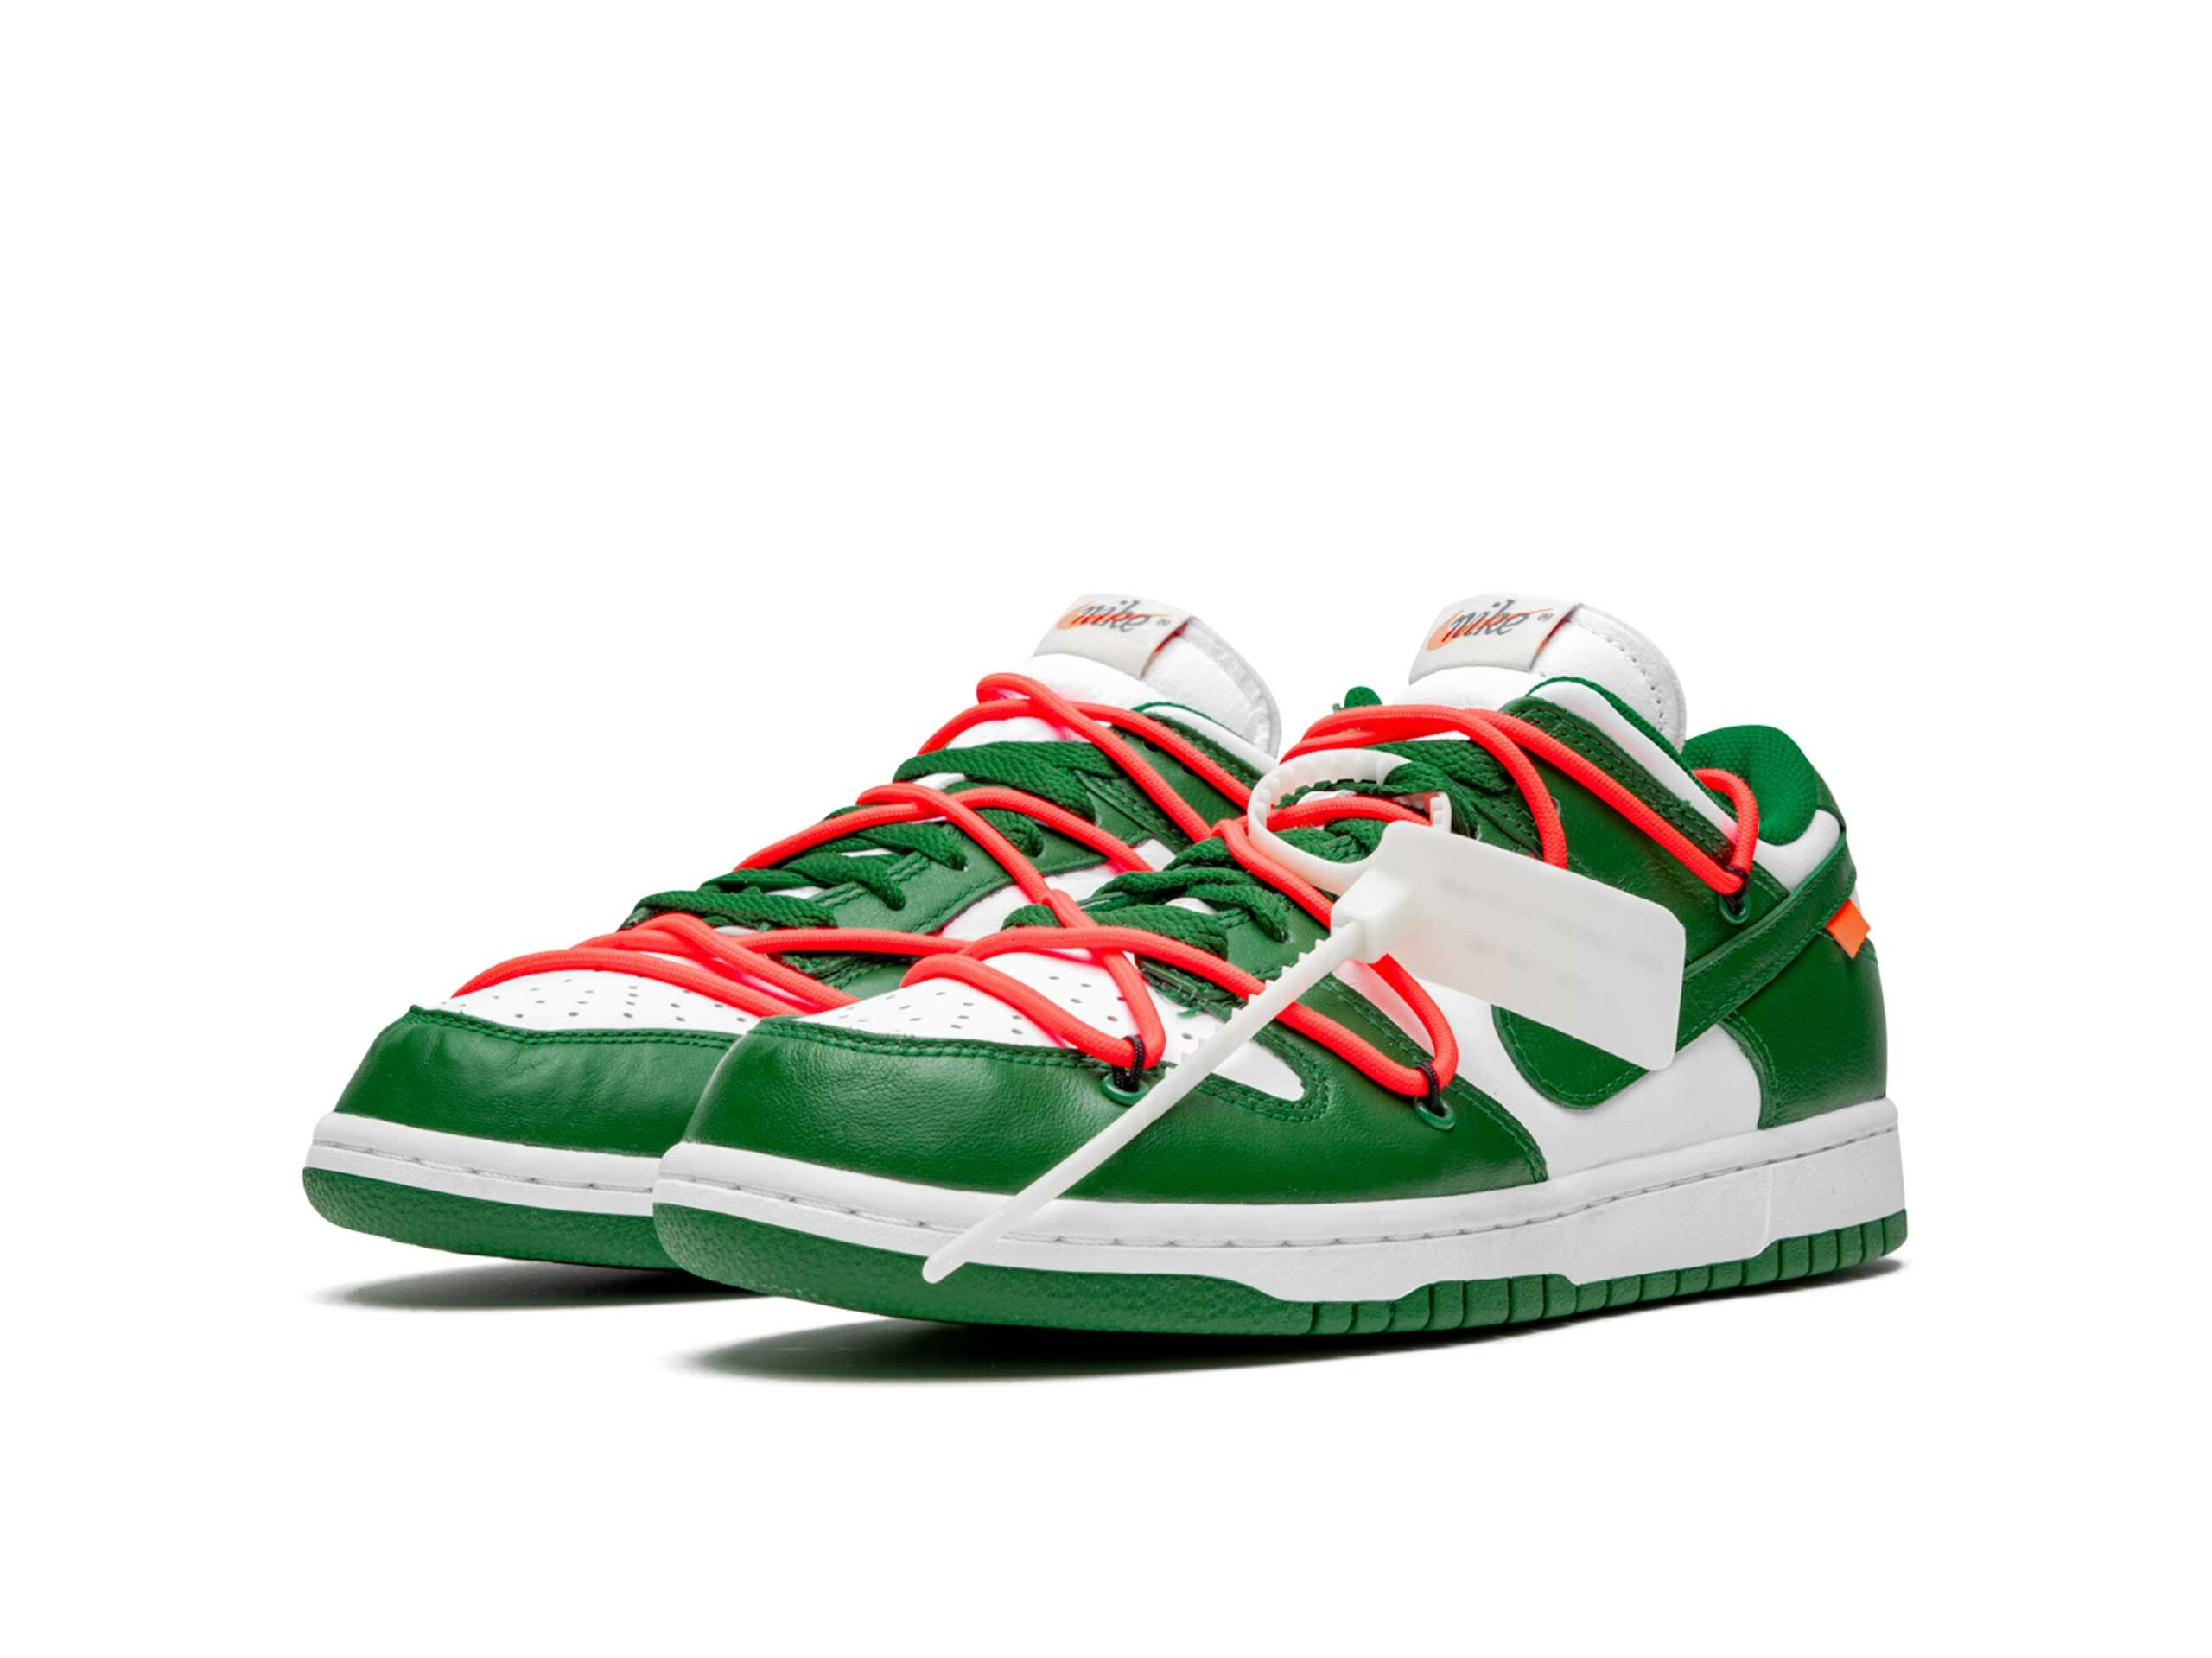 nike dunk low off-white - pine green CT0856_100 купить